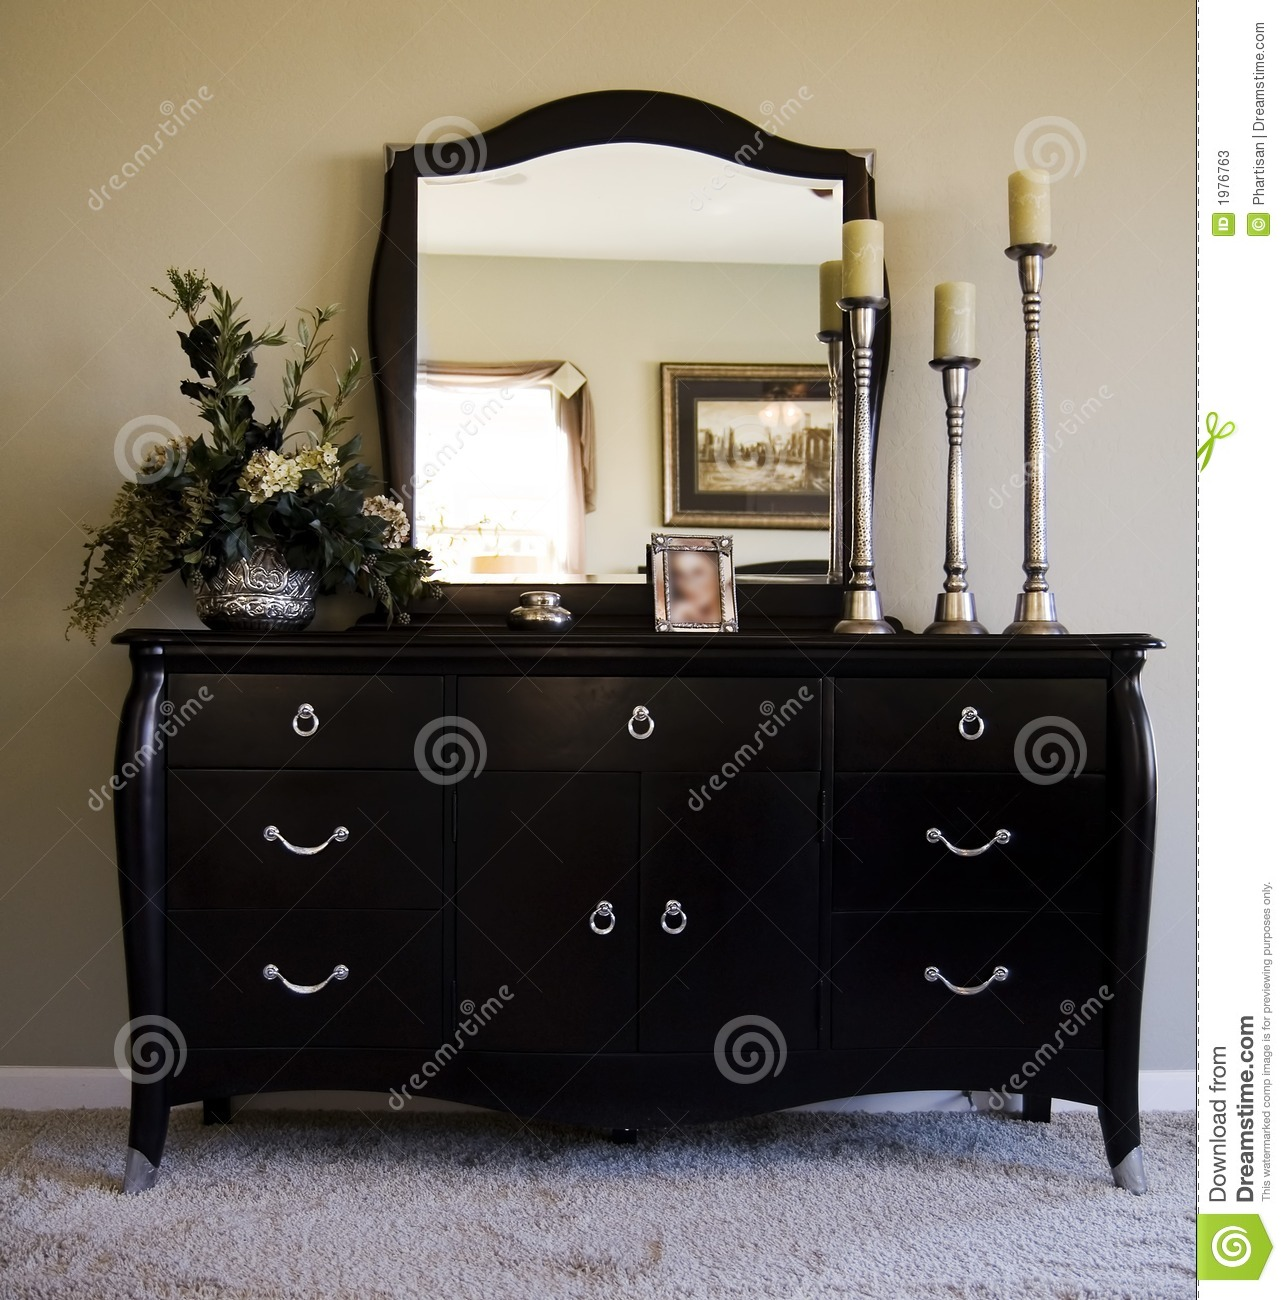 Romantic Bedroom With Mirror On Dresser Stock Image Image 1976763